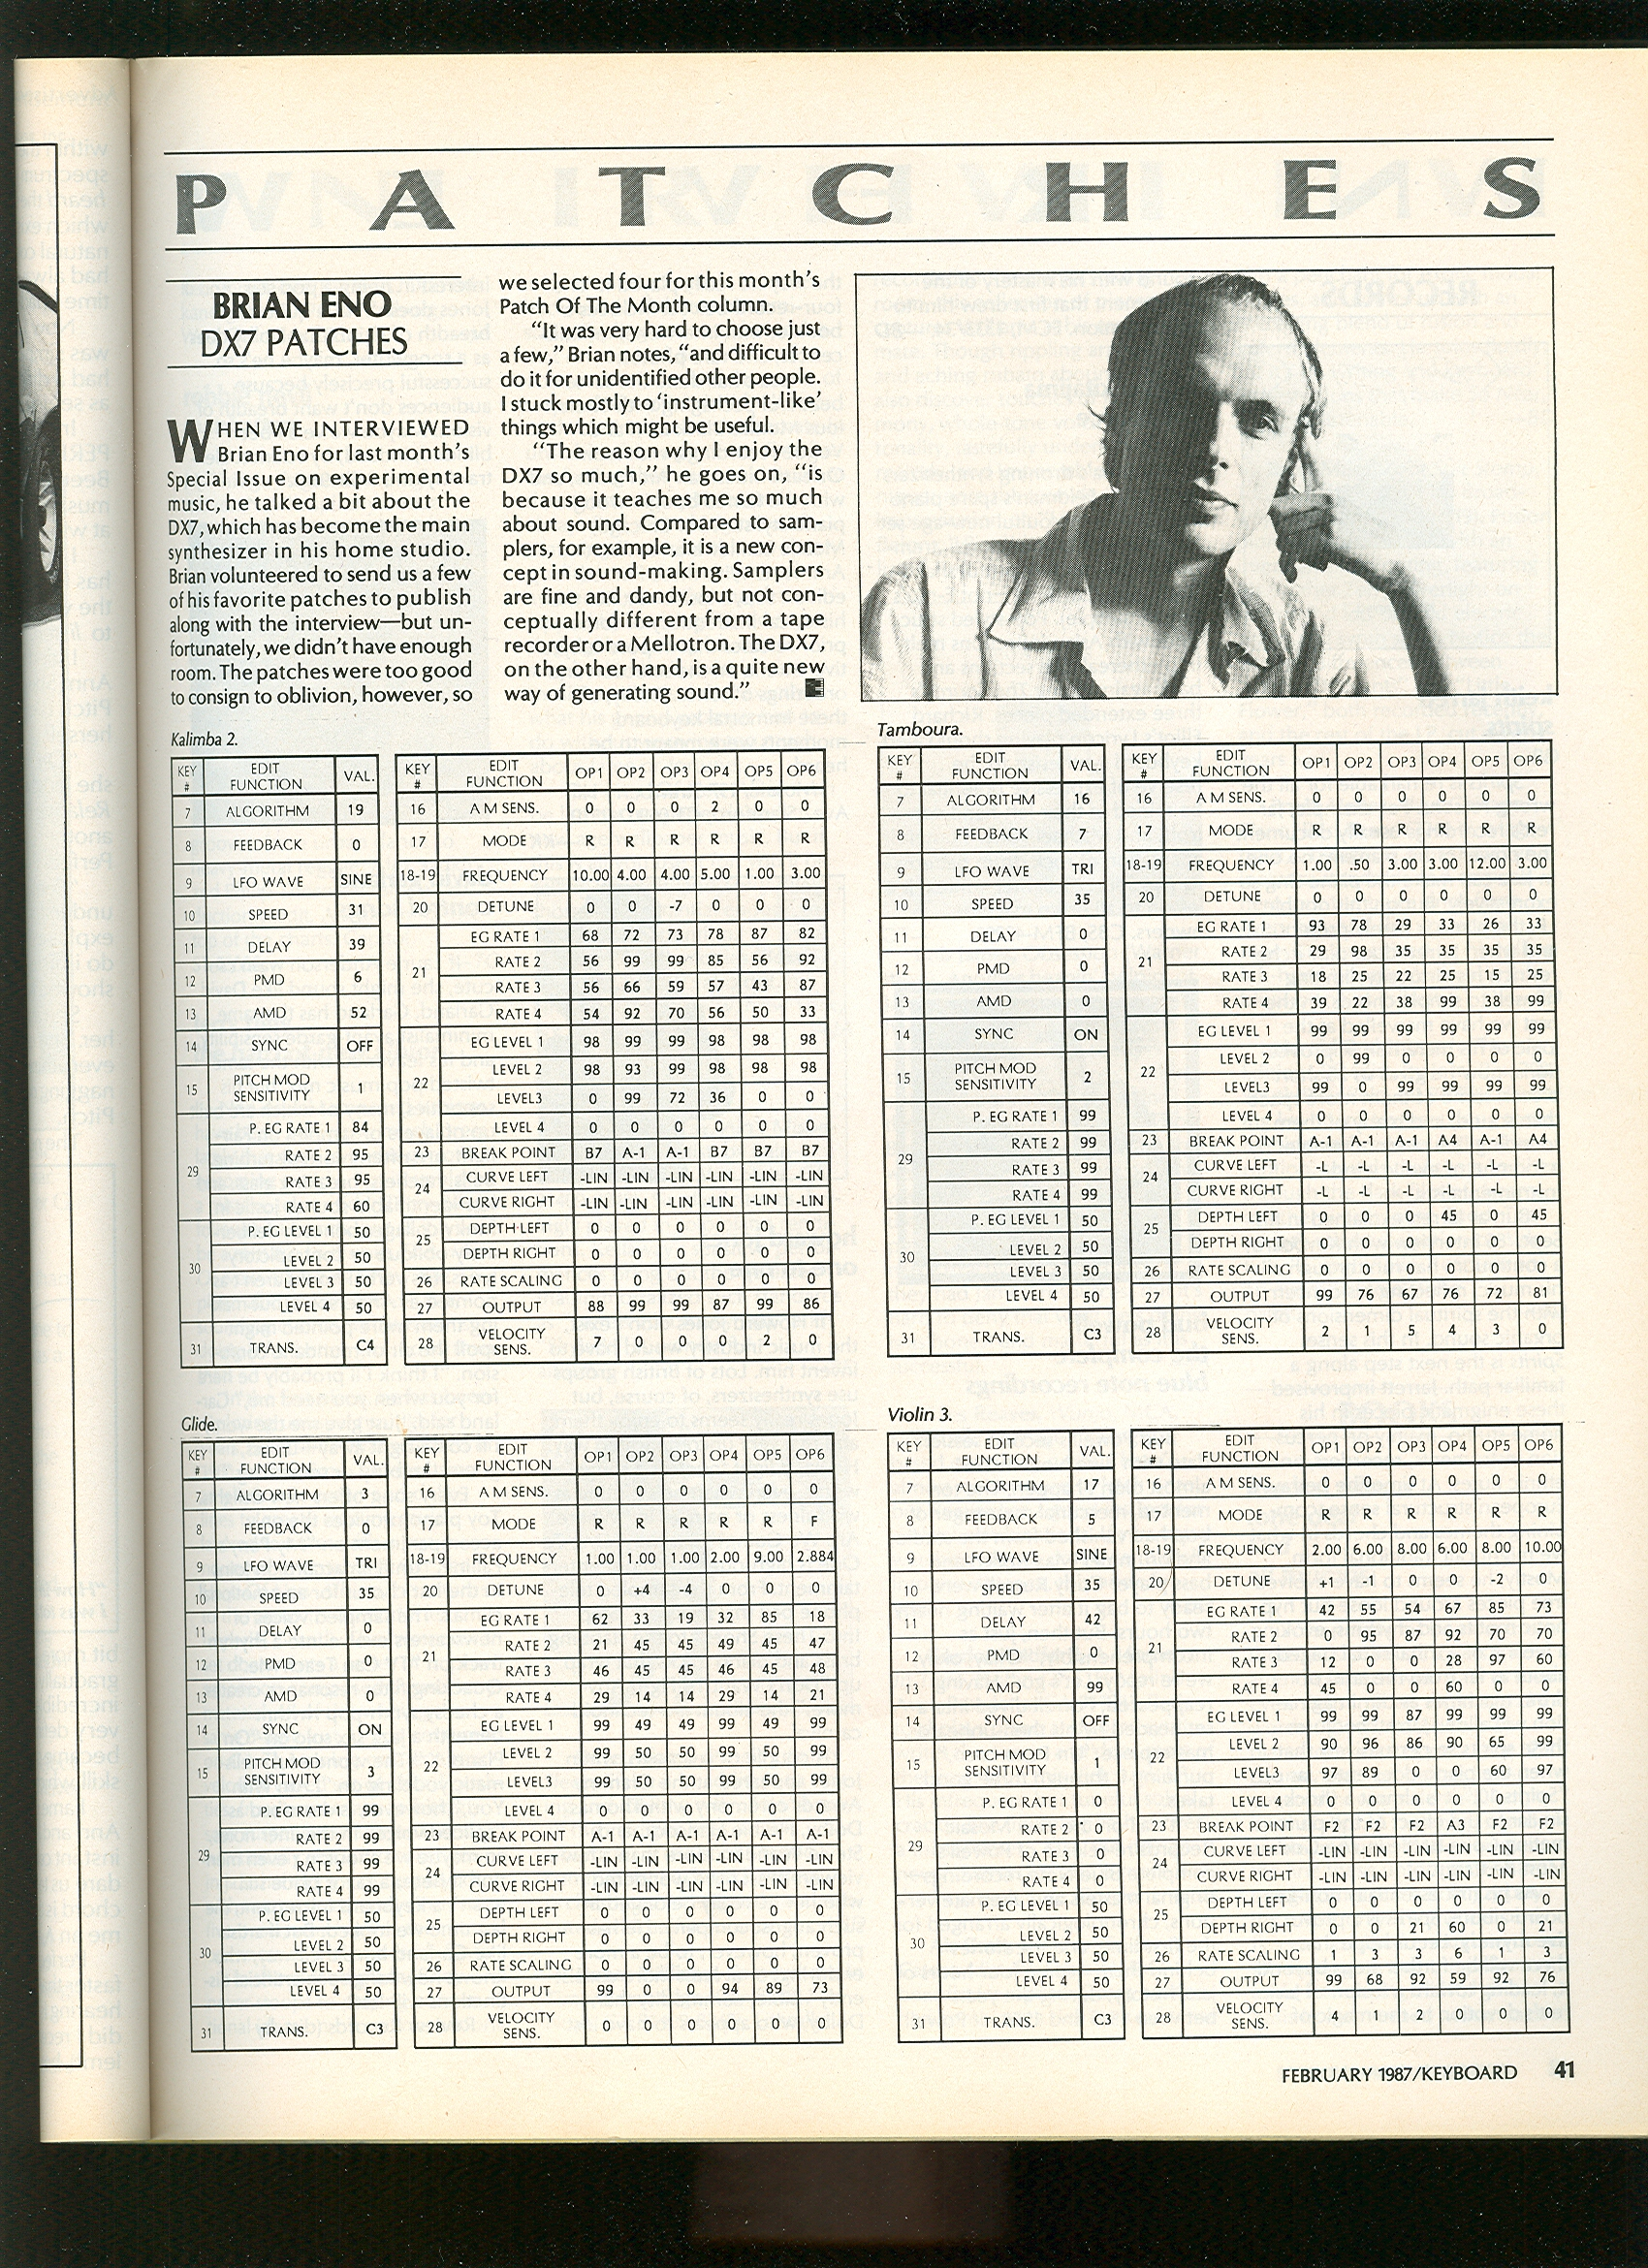 DX7 Patches from Brian Eno!